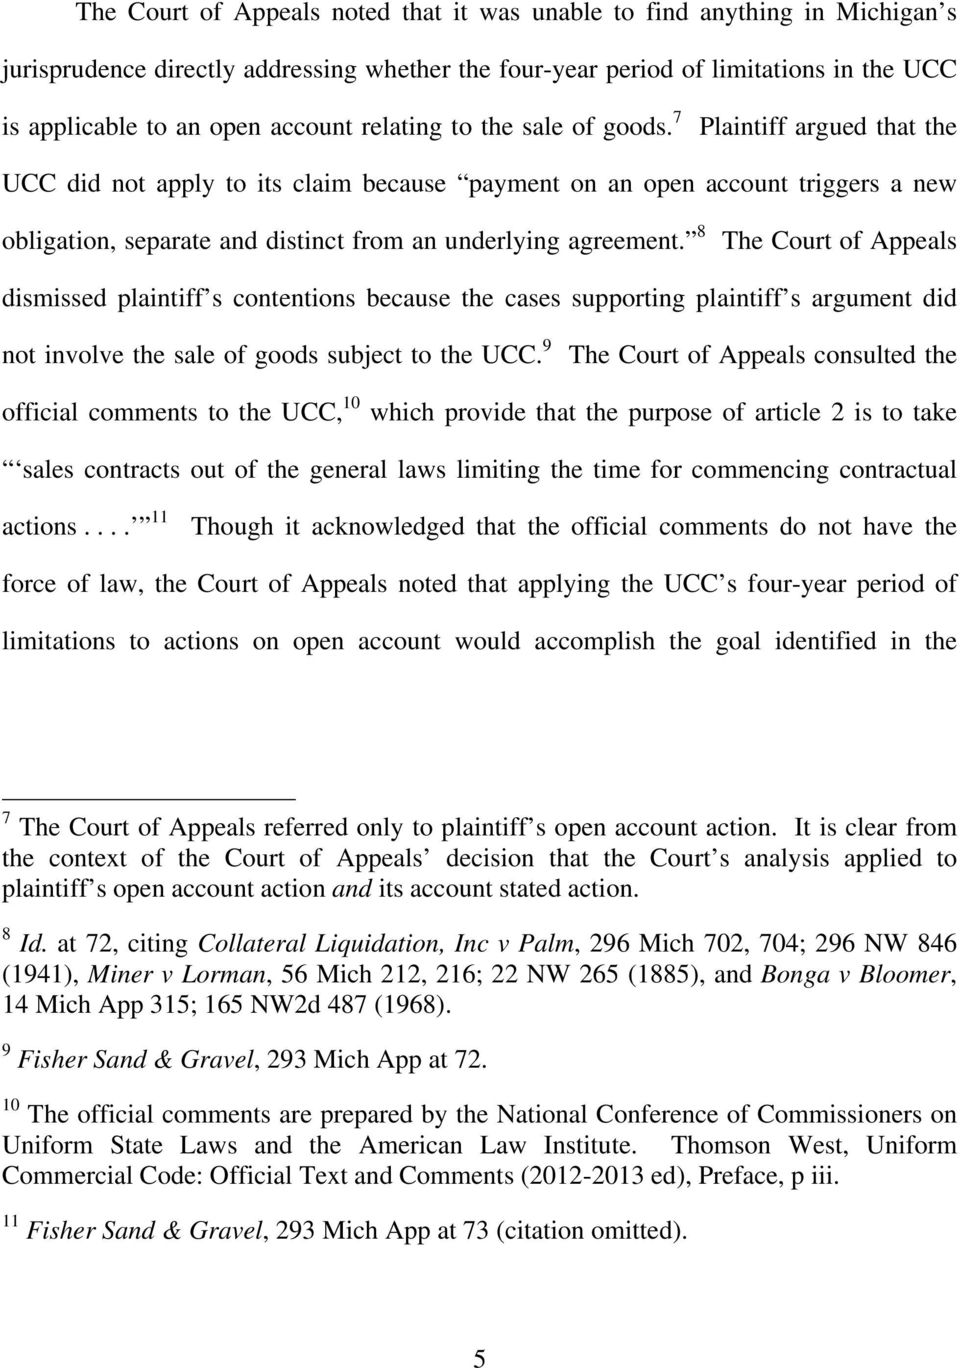 7 Plaintiff argued that the UCC did not apply to its claim because payment on an open account triggers a new obligation, separate and distinct from an underlying agreement.